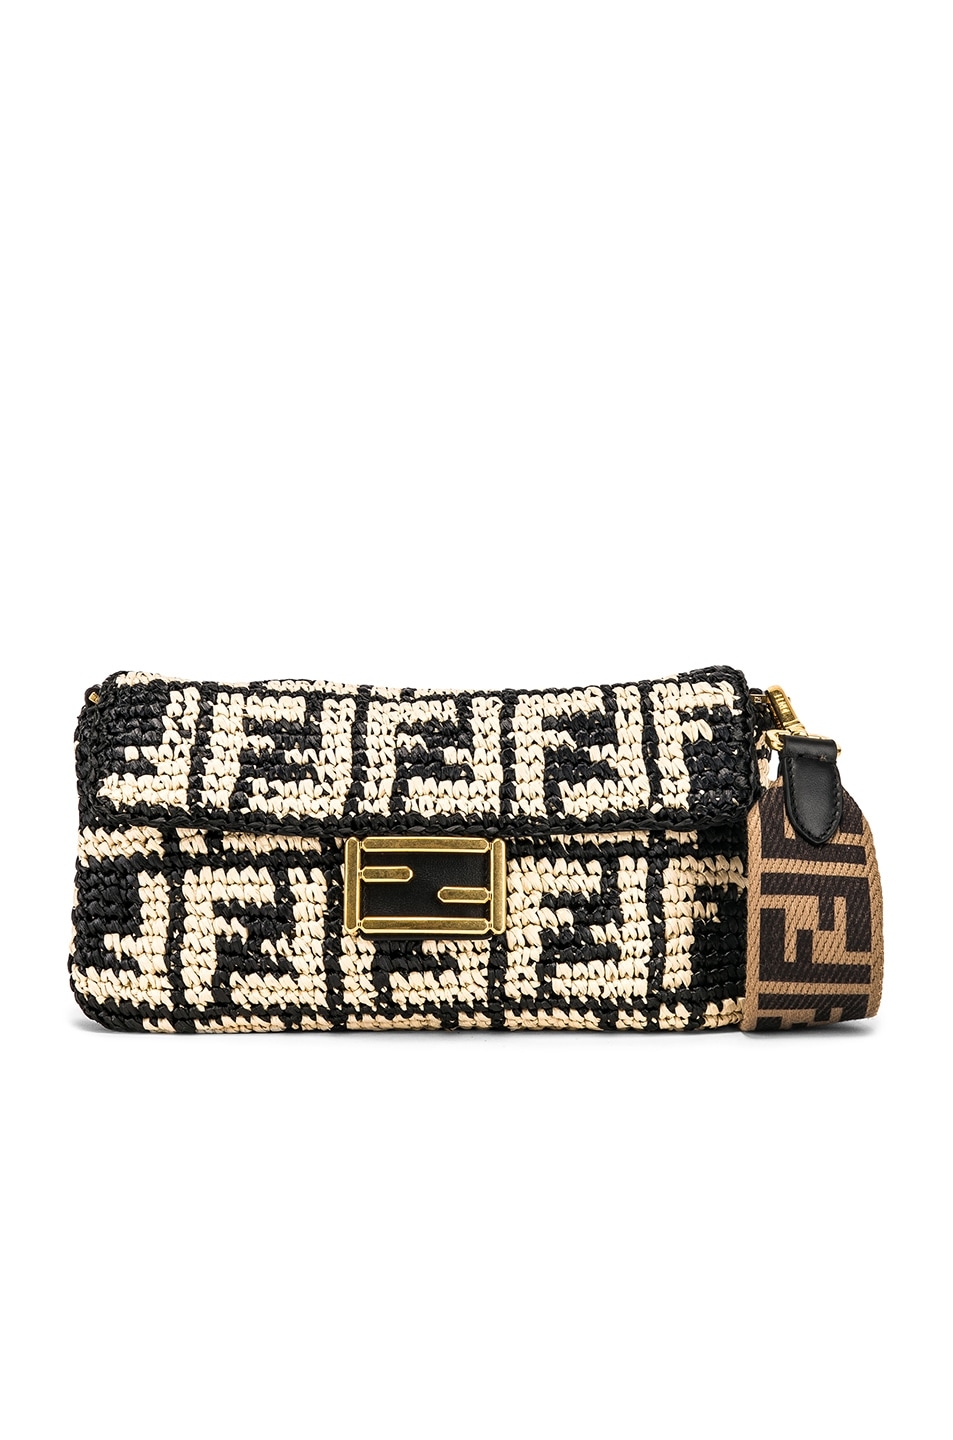 289c2c76de64 Image 1 of Fendi Baguette Double F Raffia Crossbody Bag in Black